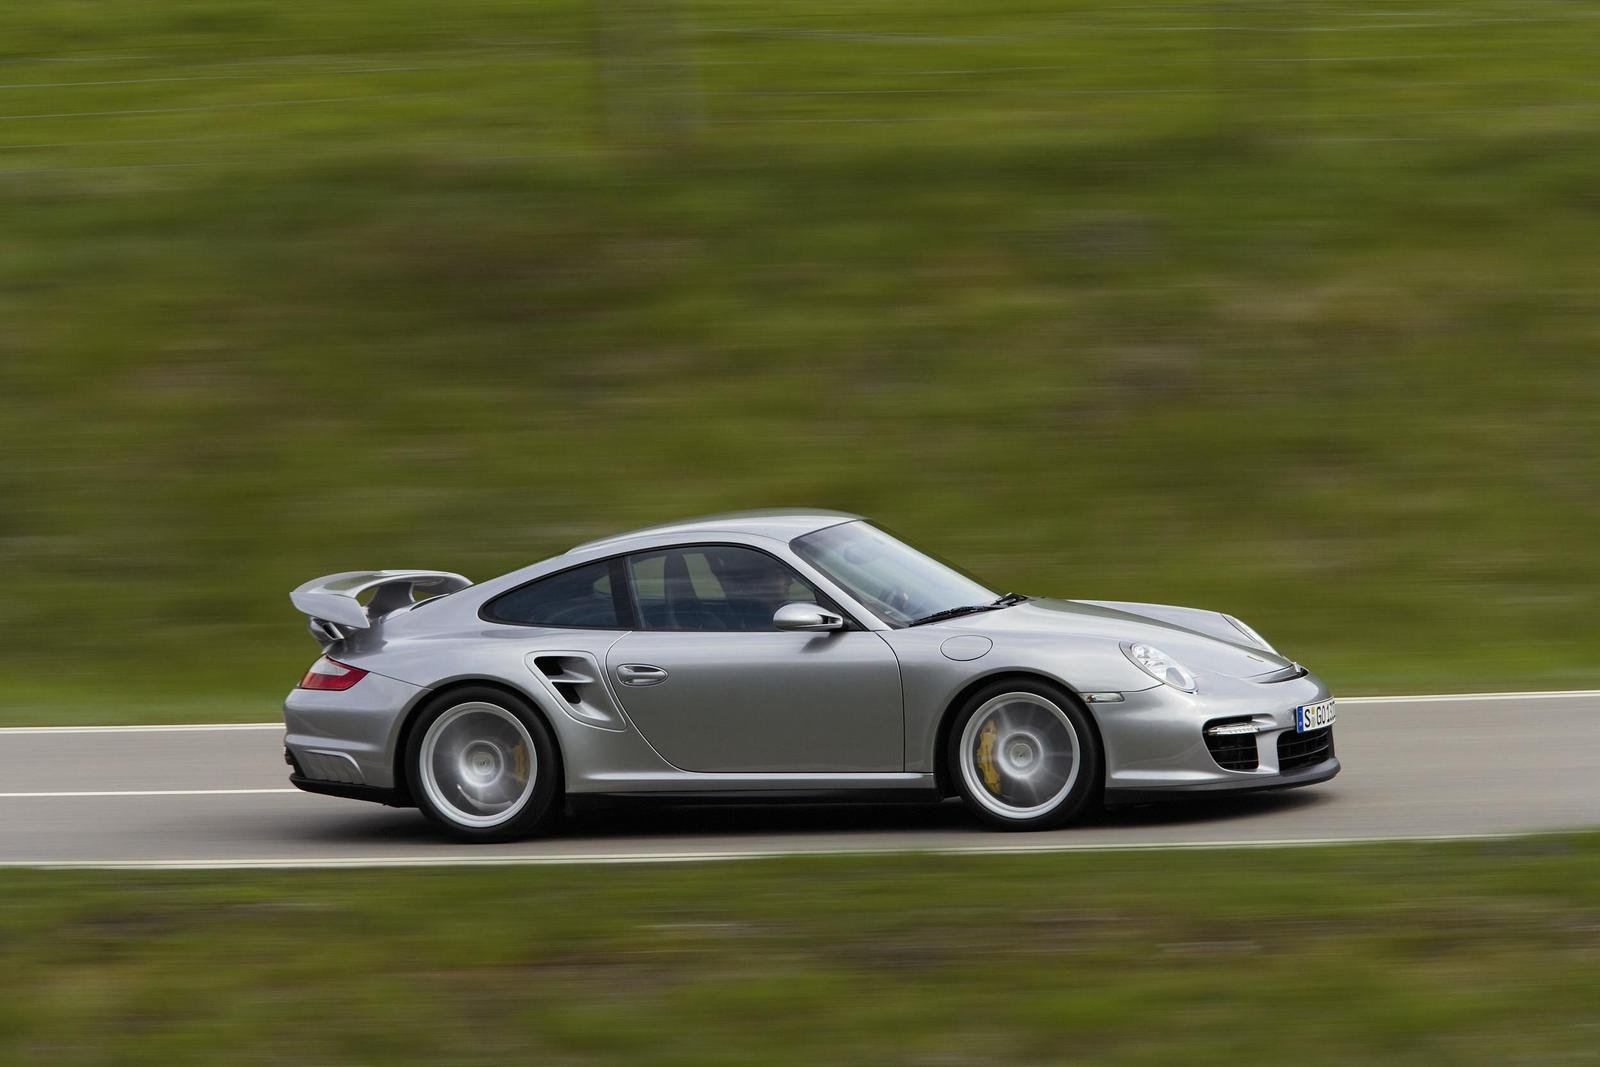 2008 porsche 911 gt2 picture 205466 car review top speed. Black Bedroom Furniture Sets. Home Design Ideas